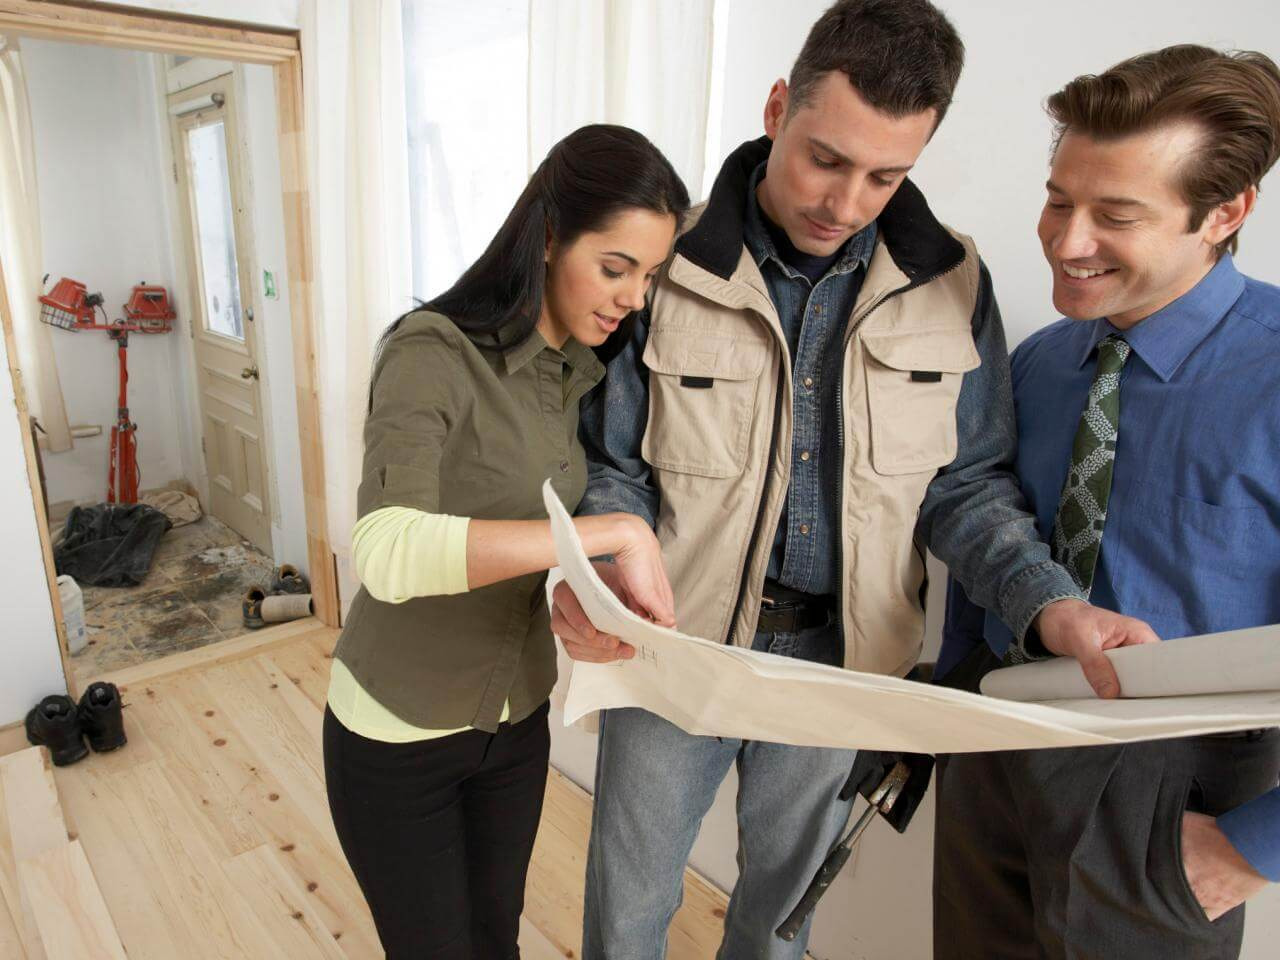 Making sure everyone's on board with the remodeling design